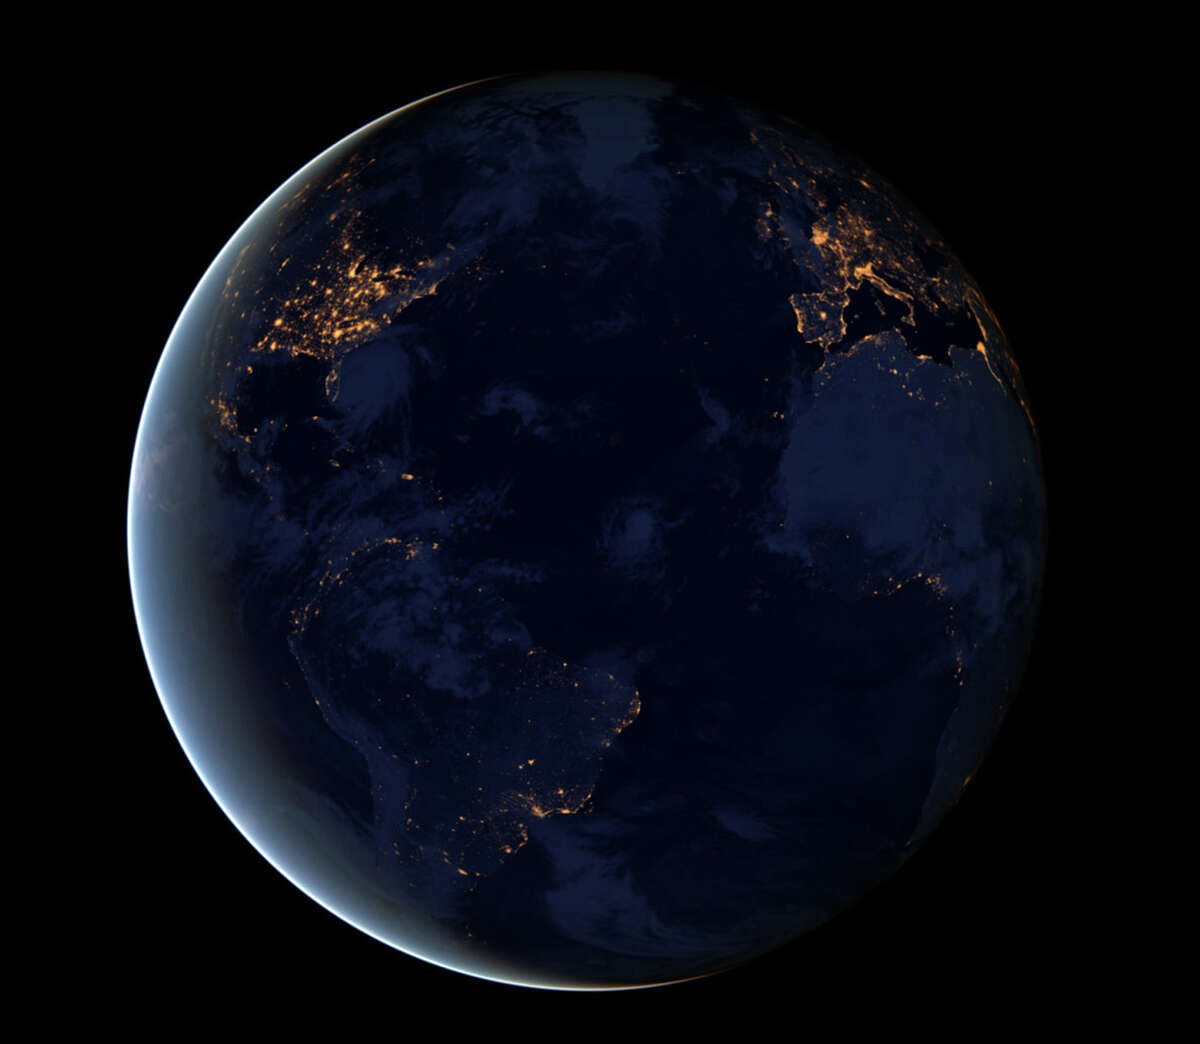 This NASA image obtained December 6, 2012 shows a new global view of Earth�'¢Â€Â™s city lights in a composite assembled from data acquired by the Suomi National Polar-orbiting Partnership (Suomi NPP) satellite. The data was acquired over nine days in April 2012 and thirteen days in October 2012. It took satellite 312 orbits and 2.5 terabytes of data to get a clear shot of every parcel of Earth�'¢Â€Â™s land surface and islands. This new data was then mapped over existing Blue Marble imagery to provide a realistic view of the planet.The image was made possible by the satellite's